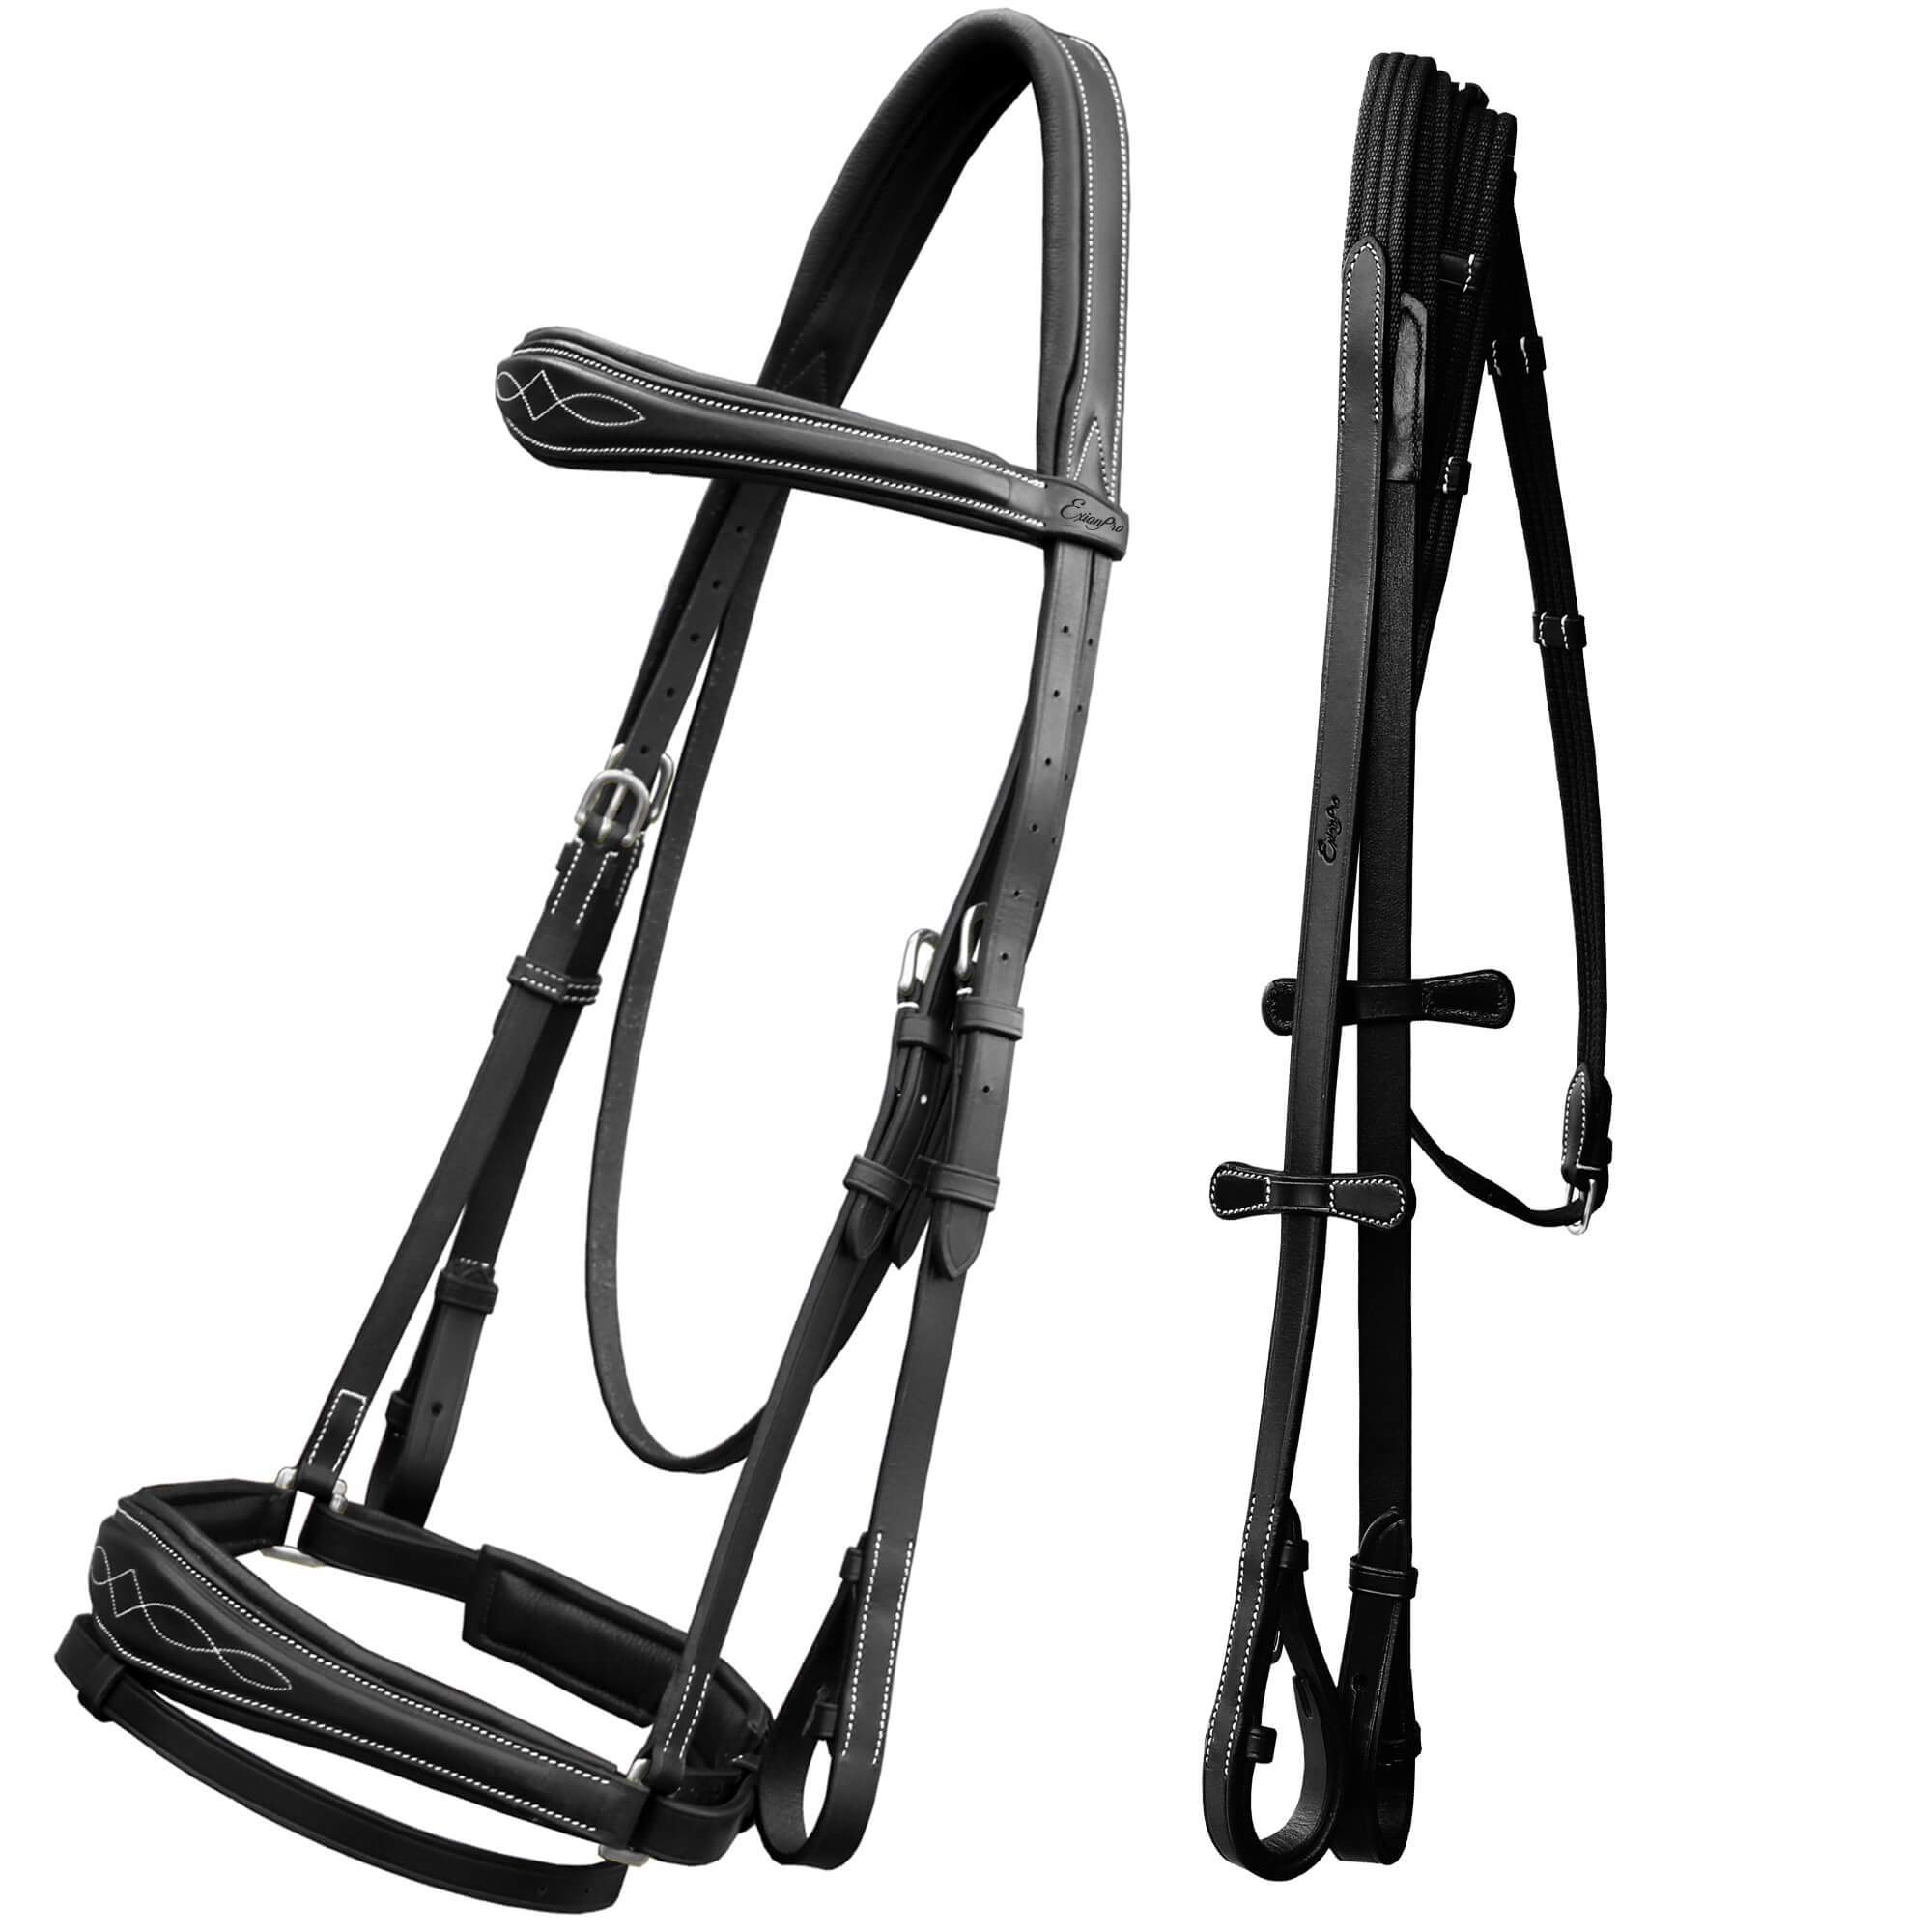 English Bridles-ExionPro Anatomical Dressage Bridle with Web Reins-Bridles and Reins